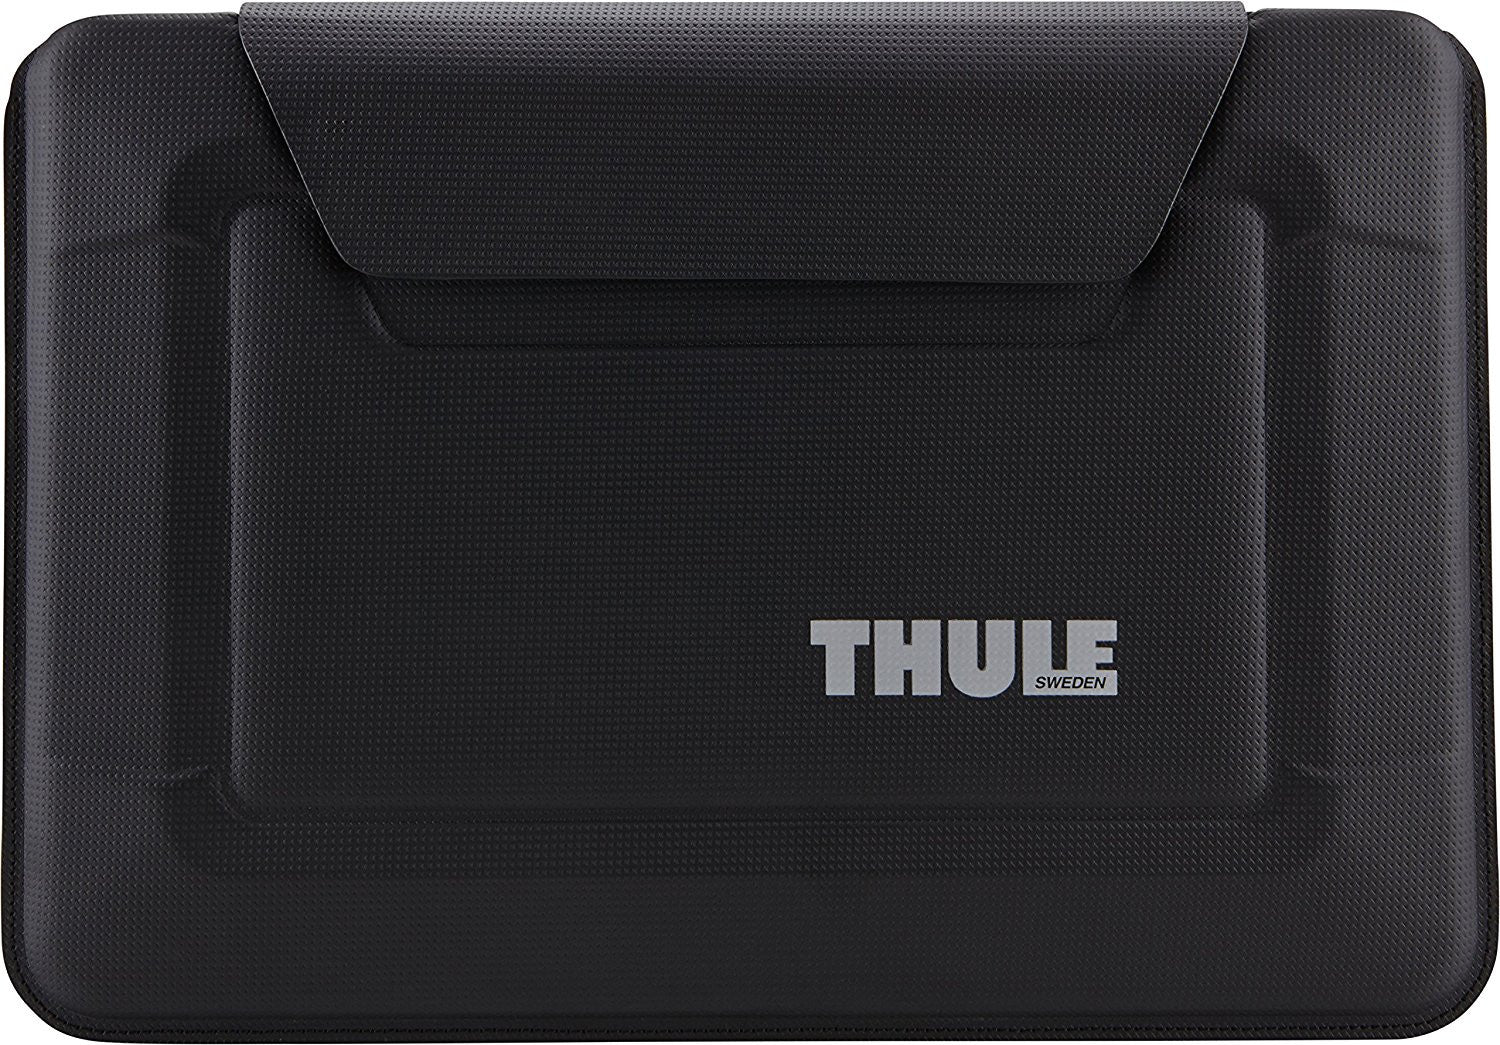 "Thule TGEE-2251 Gauntlet 3.0 - 13"" Macbook Air Envelope Sleeve"